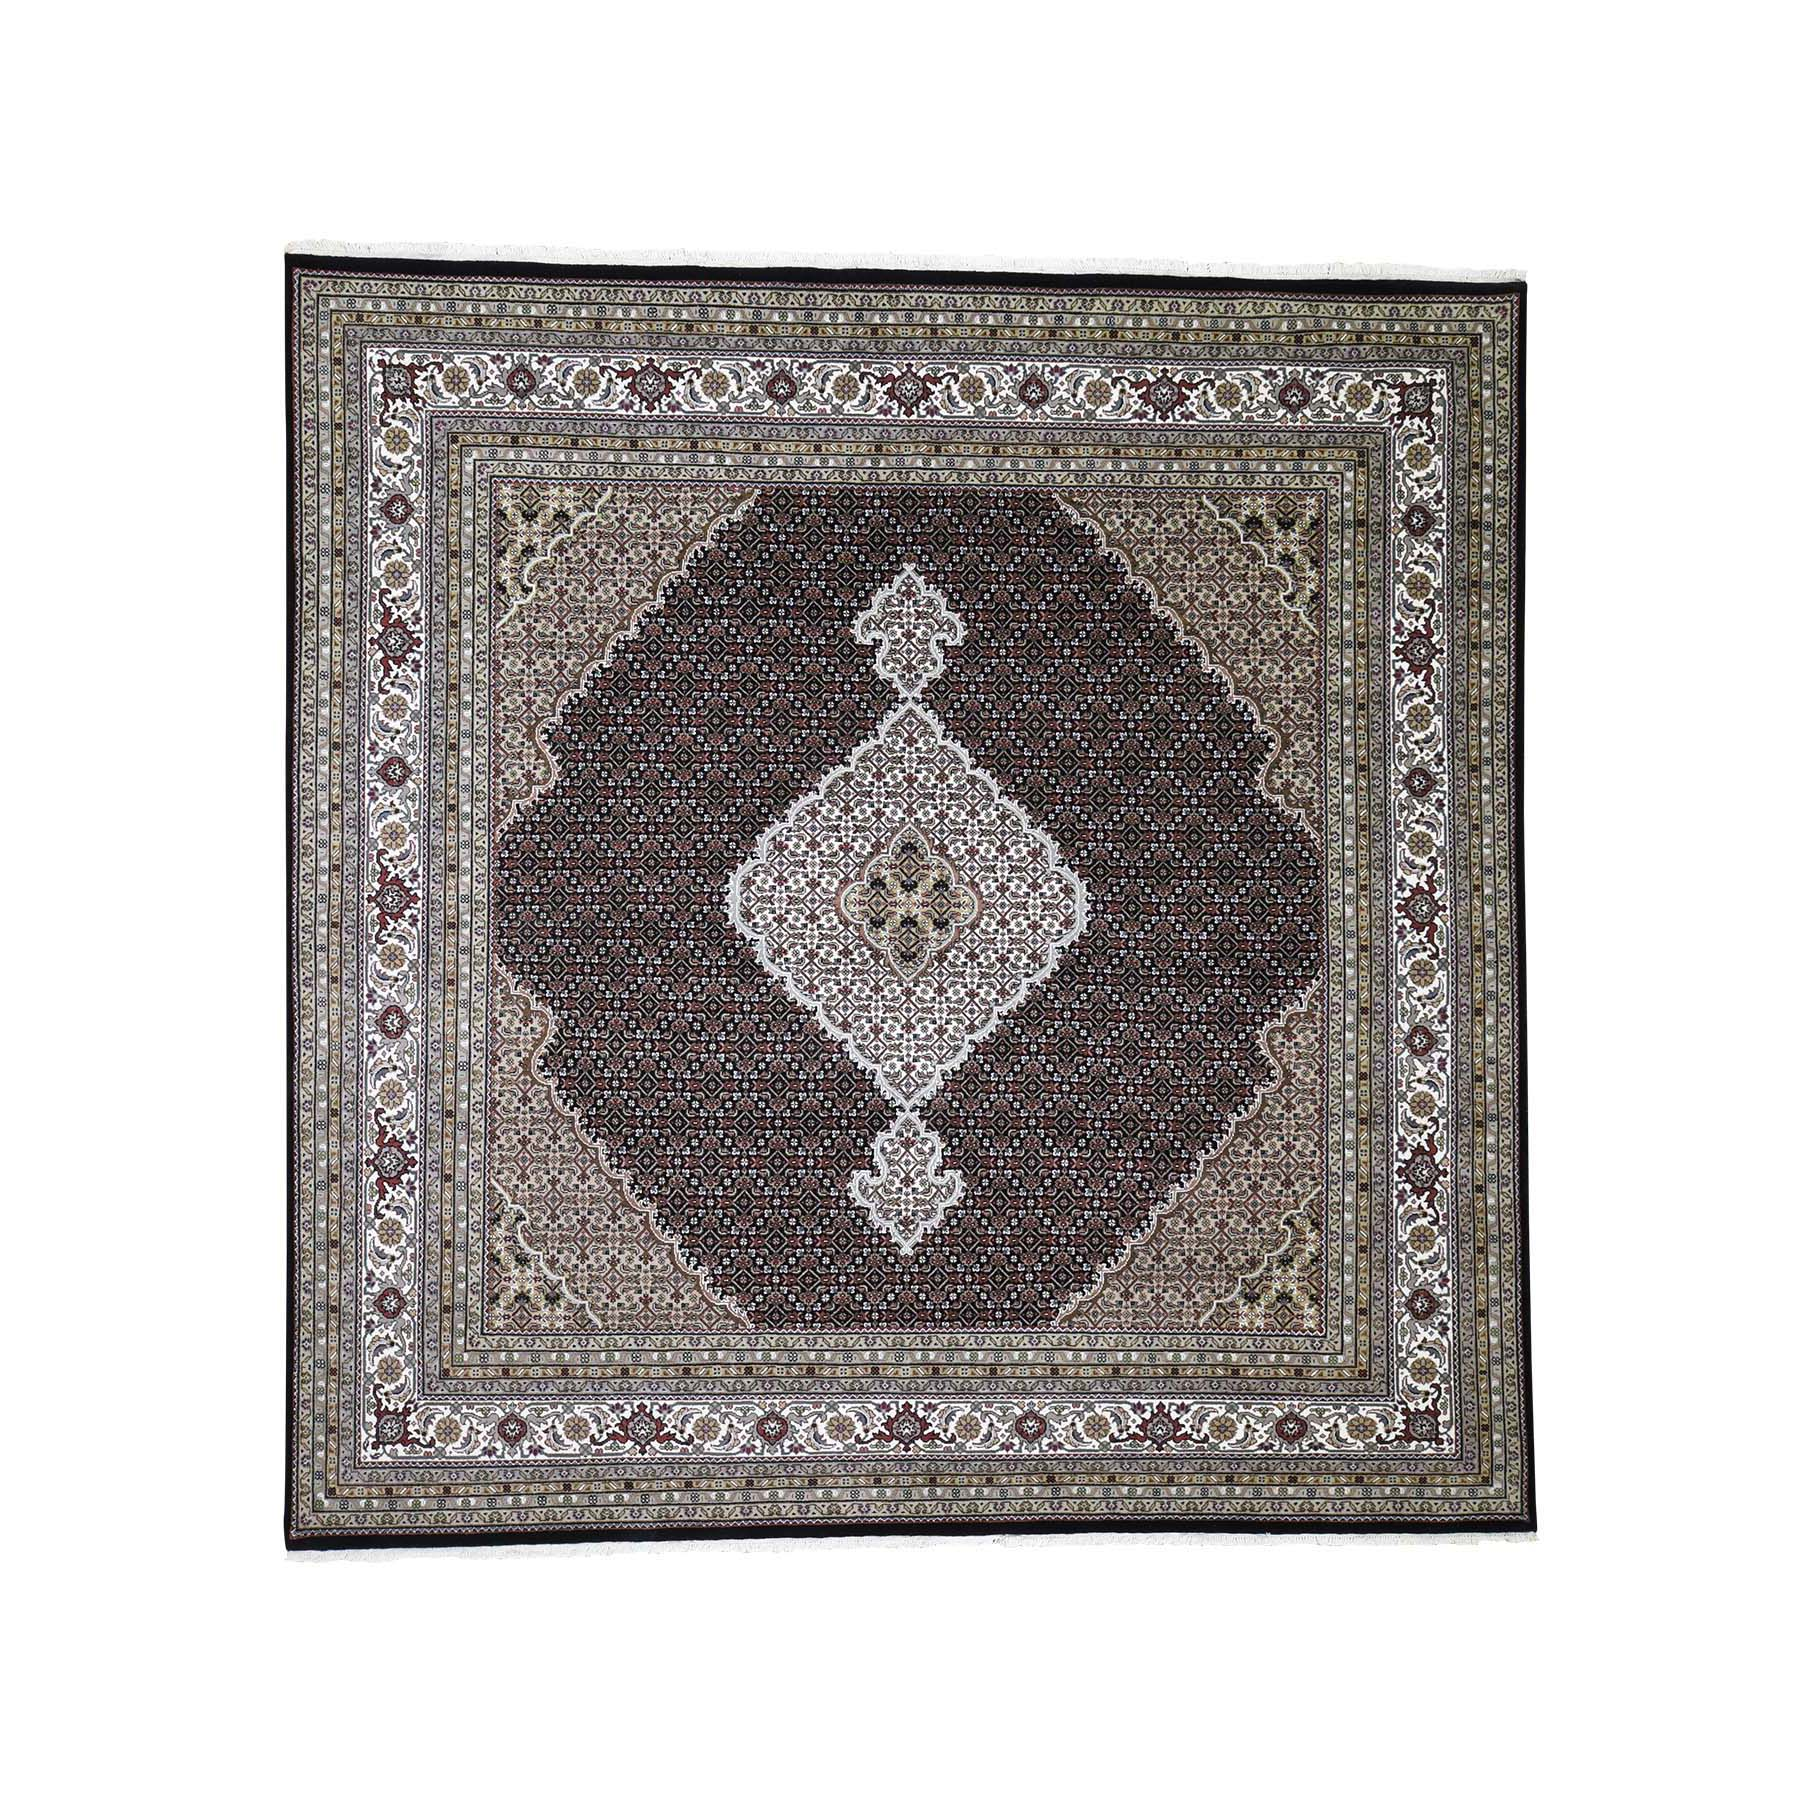 9'X9' Tabriz Mahi Wool And Silk Square Hand-Knotted Oriental Rug moade0a9